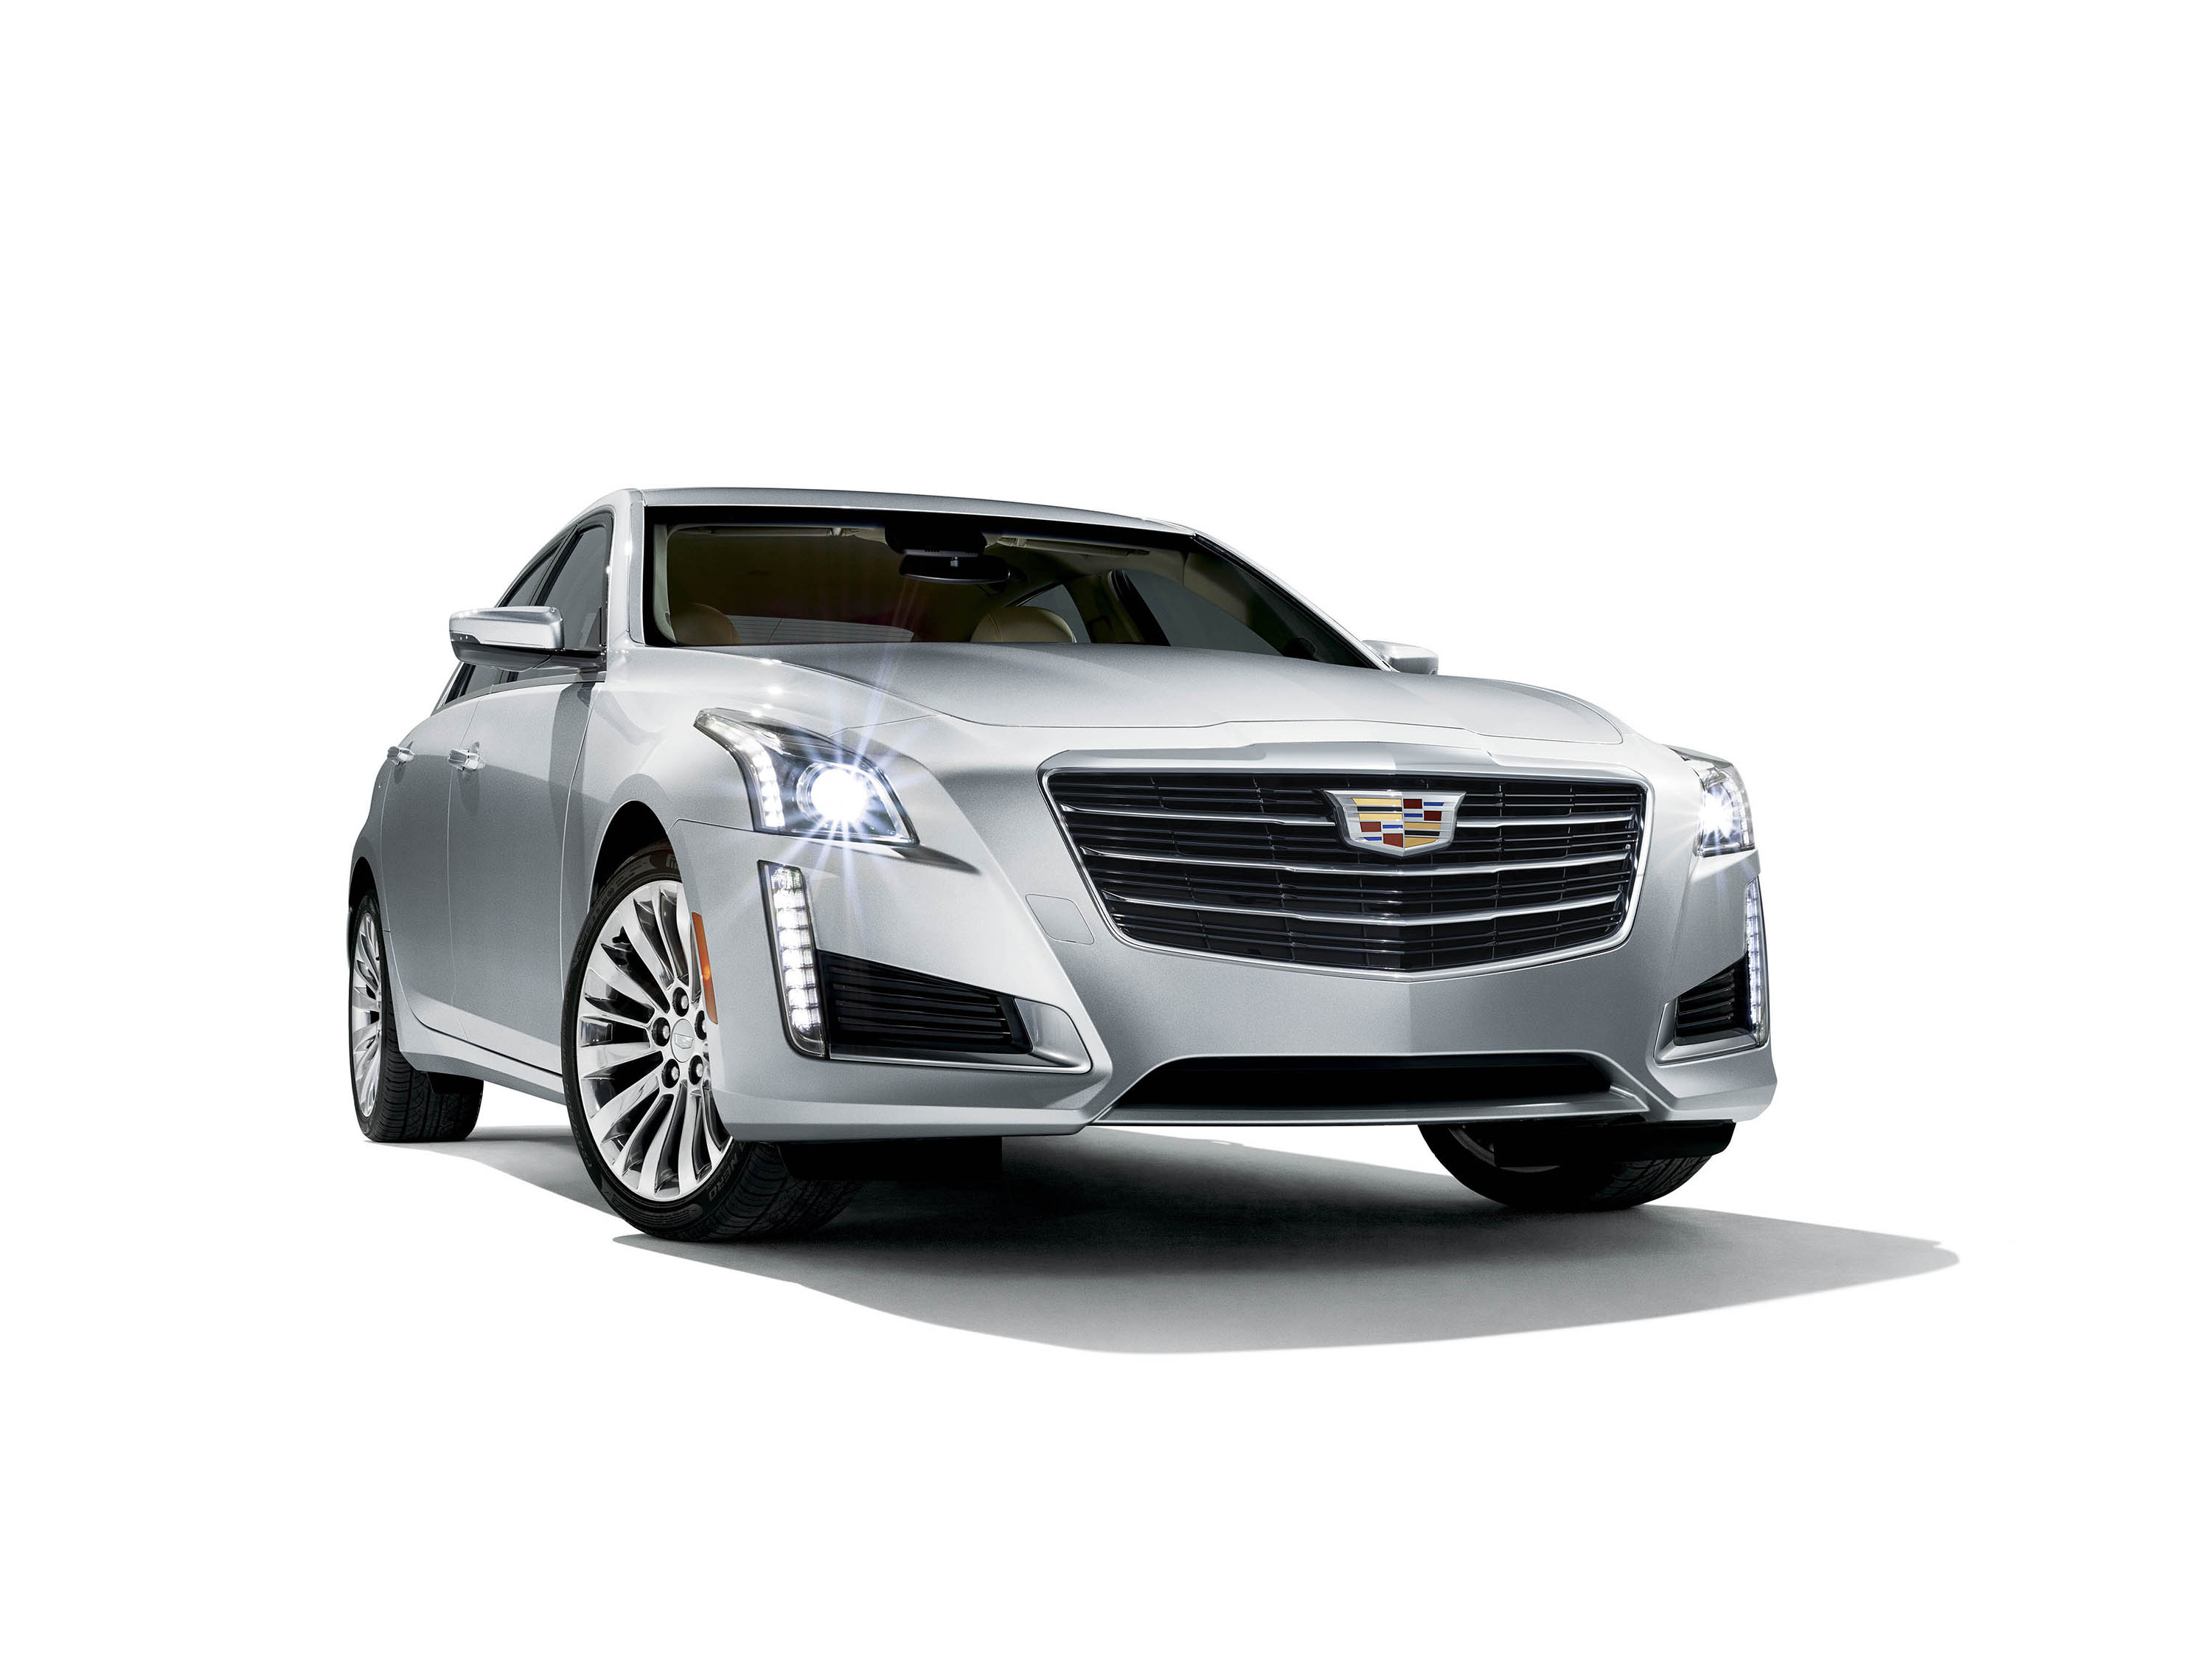 cts pakistan v undercuts hp cadillac german autolook price for rivals blog